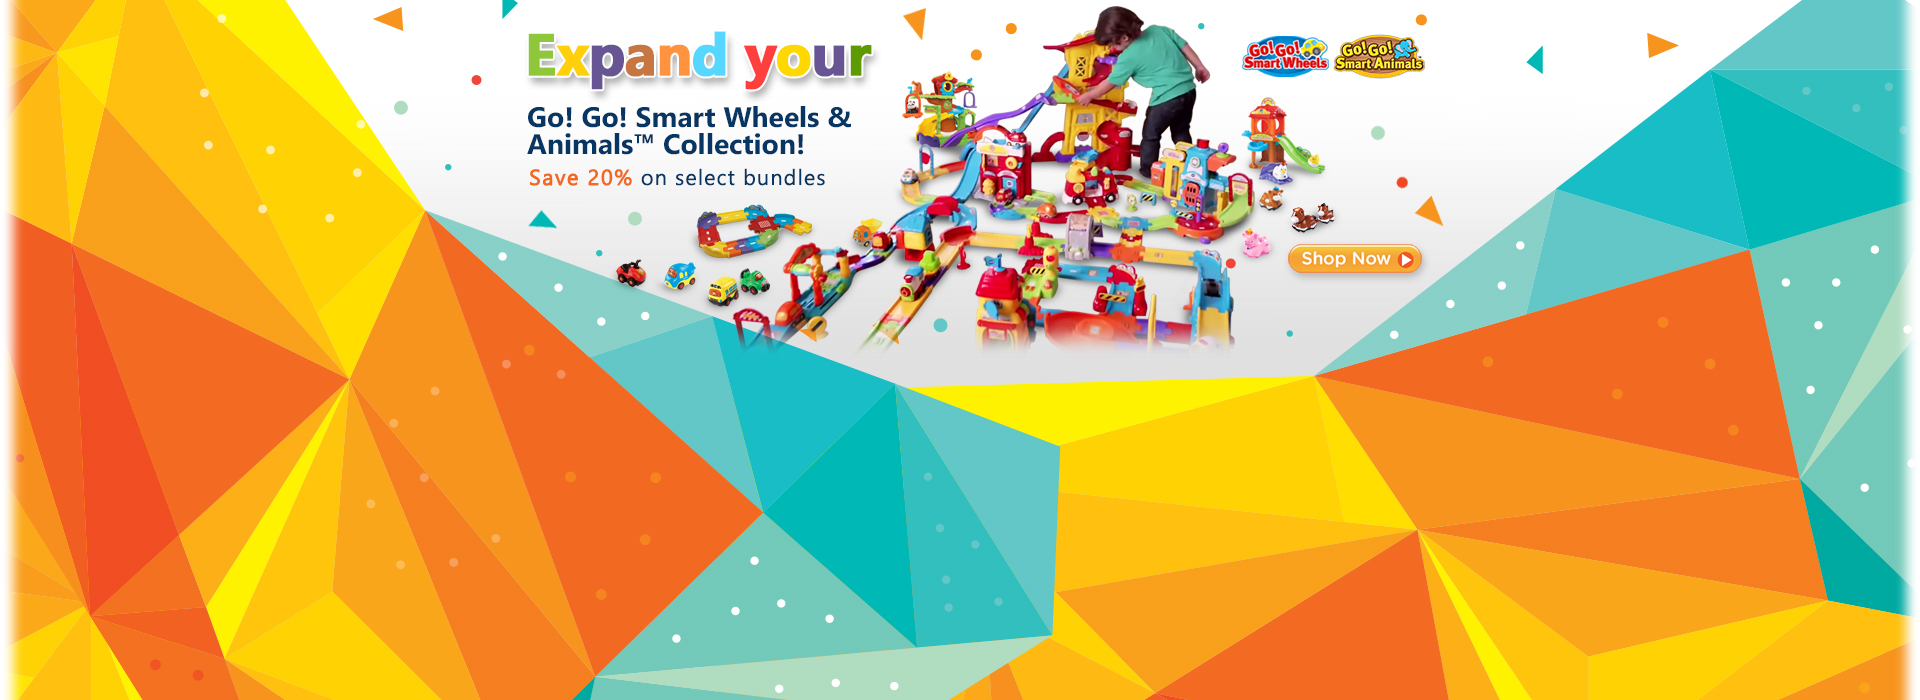 Expand your Go! Go! Smart Wheels & Animals Collection! Save 20% on select bundles